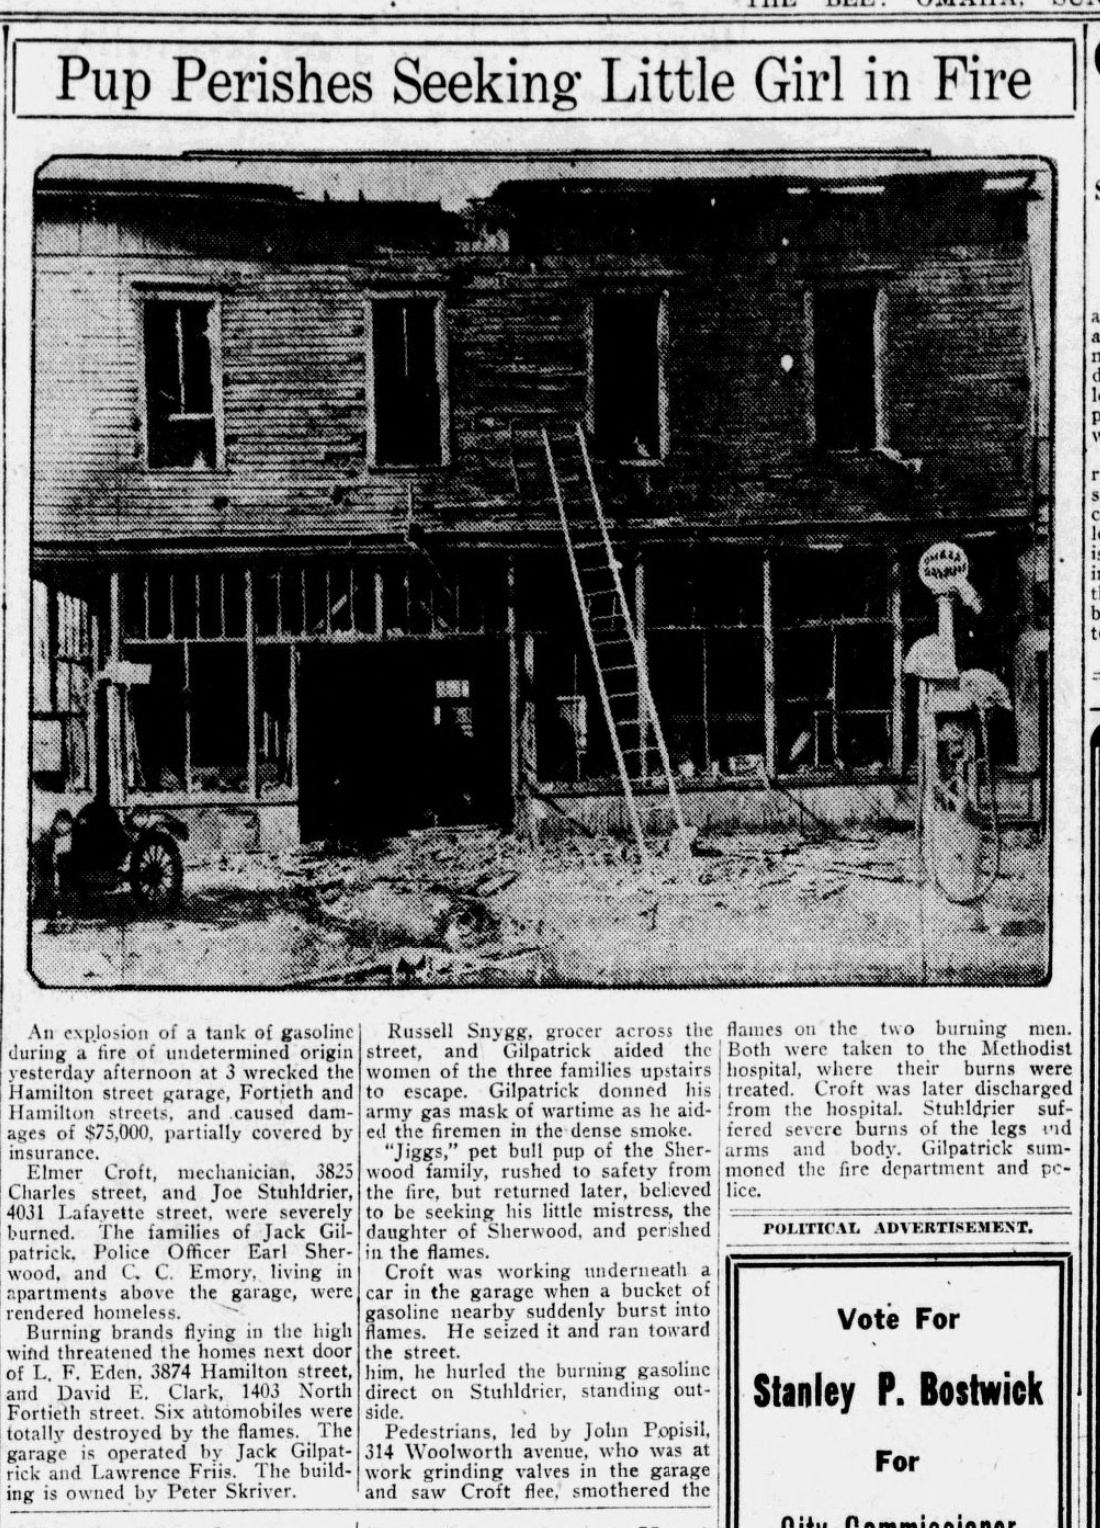 April 3, 1921 Omaha Bee story of a fire at N. 40th and Hamilton Streets in Omaha, Nebraska